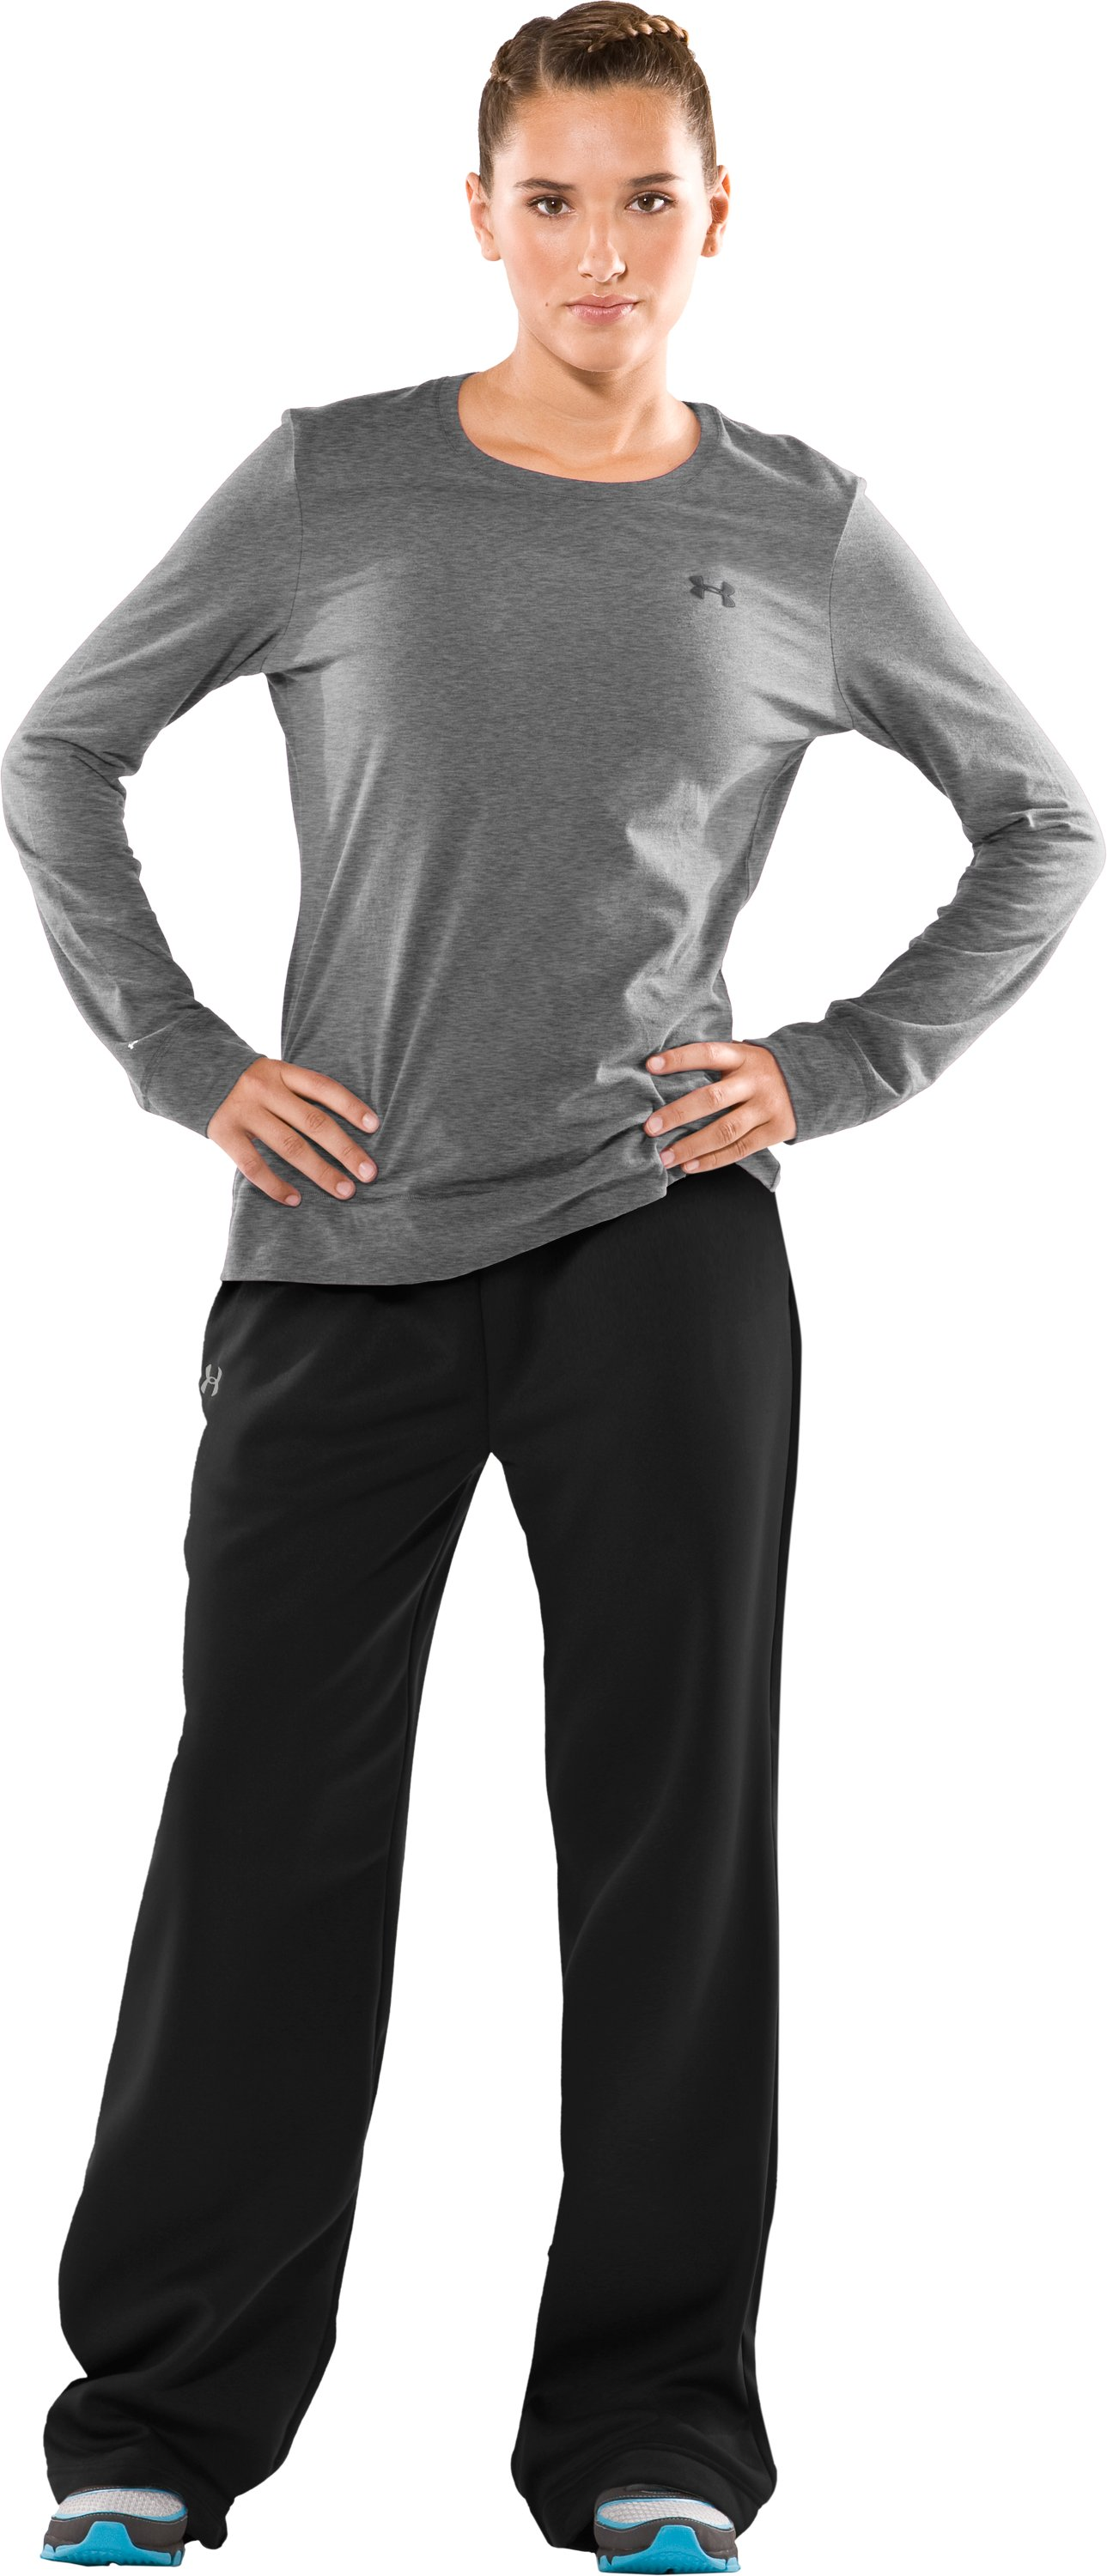 "Women's 34"" Trophy Pants - Tall, Black , zoomed image"